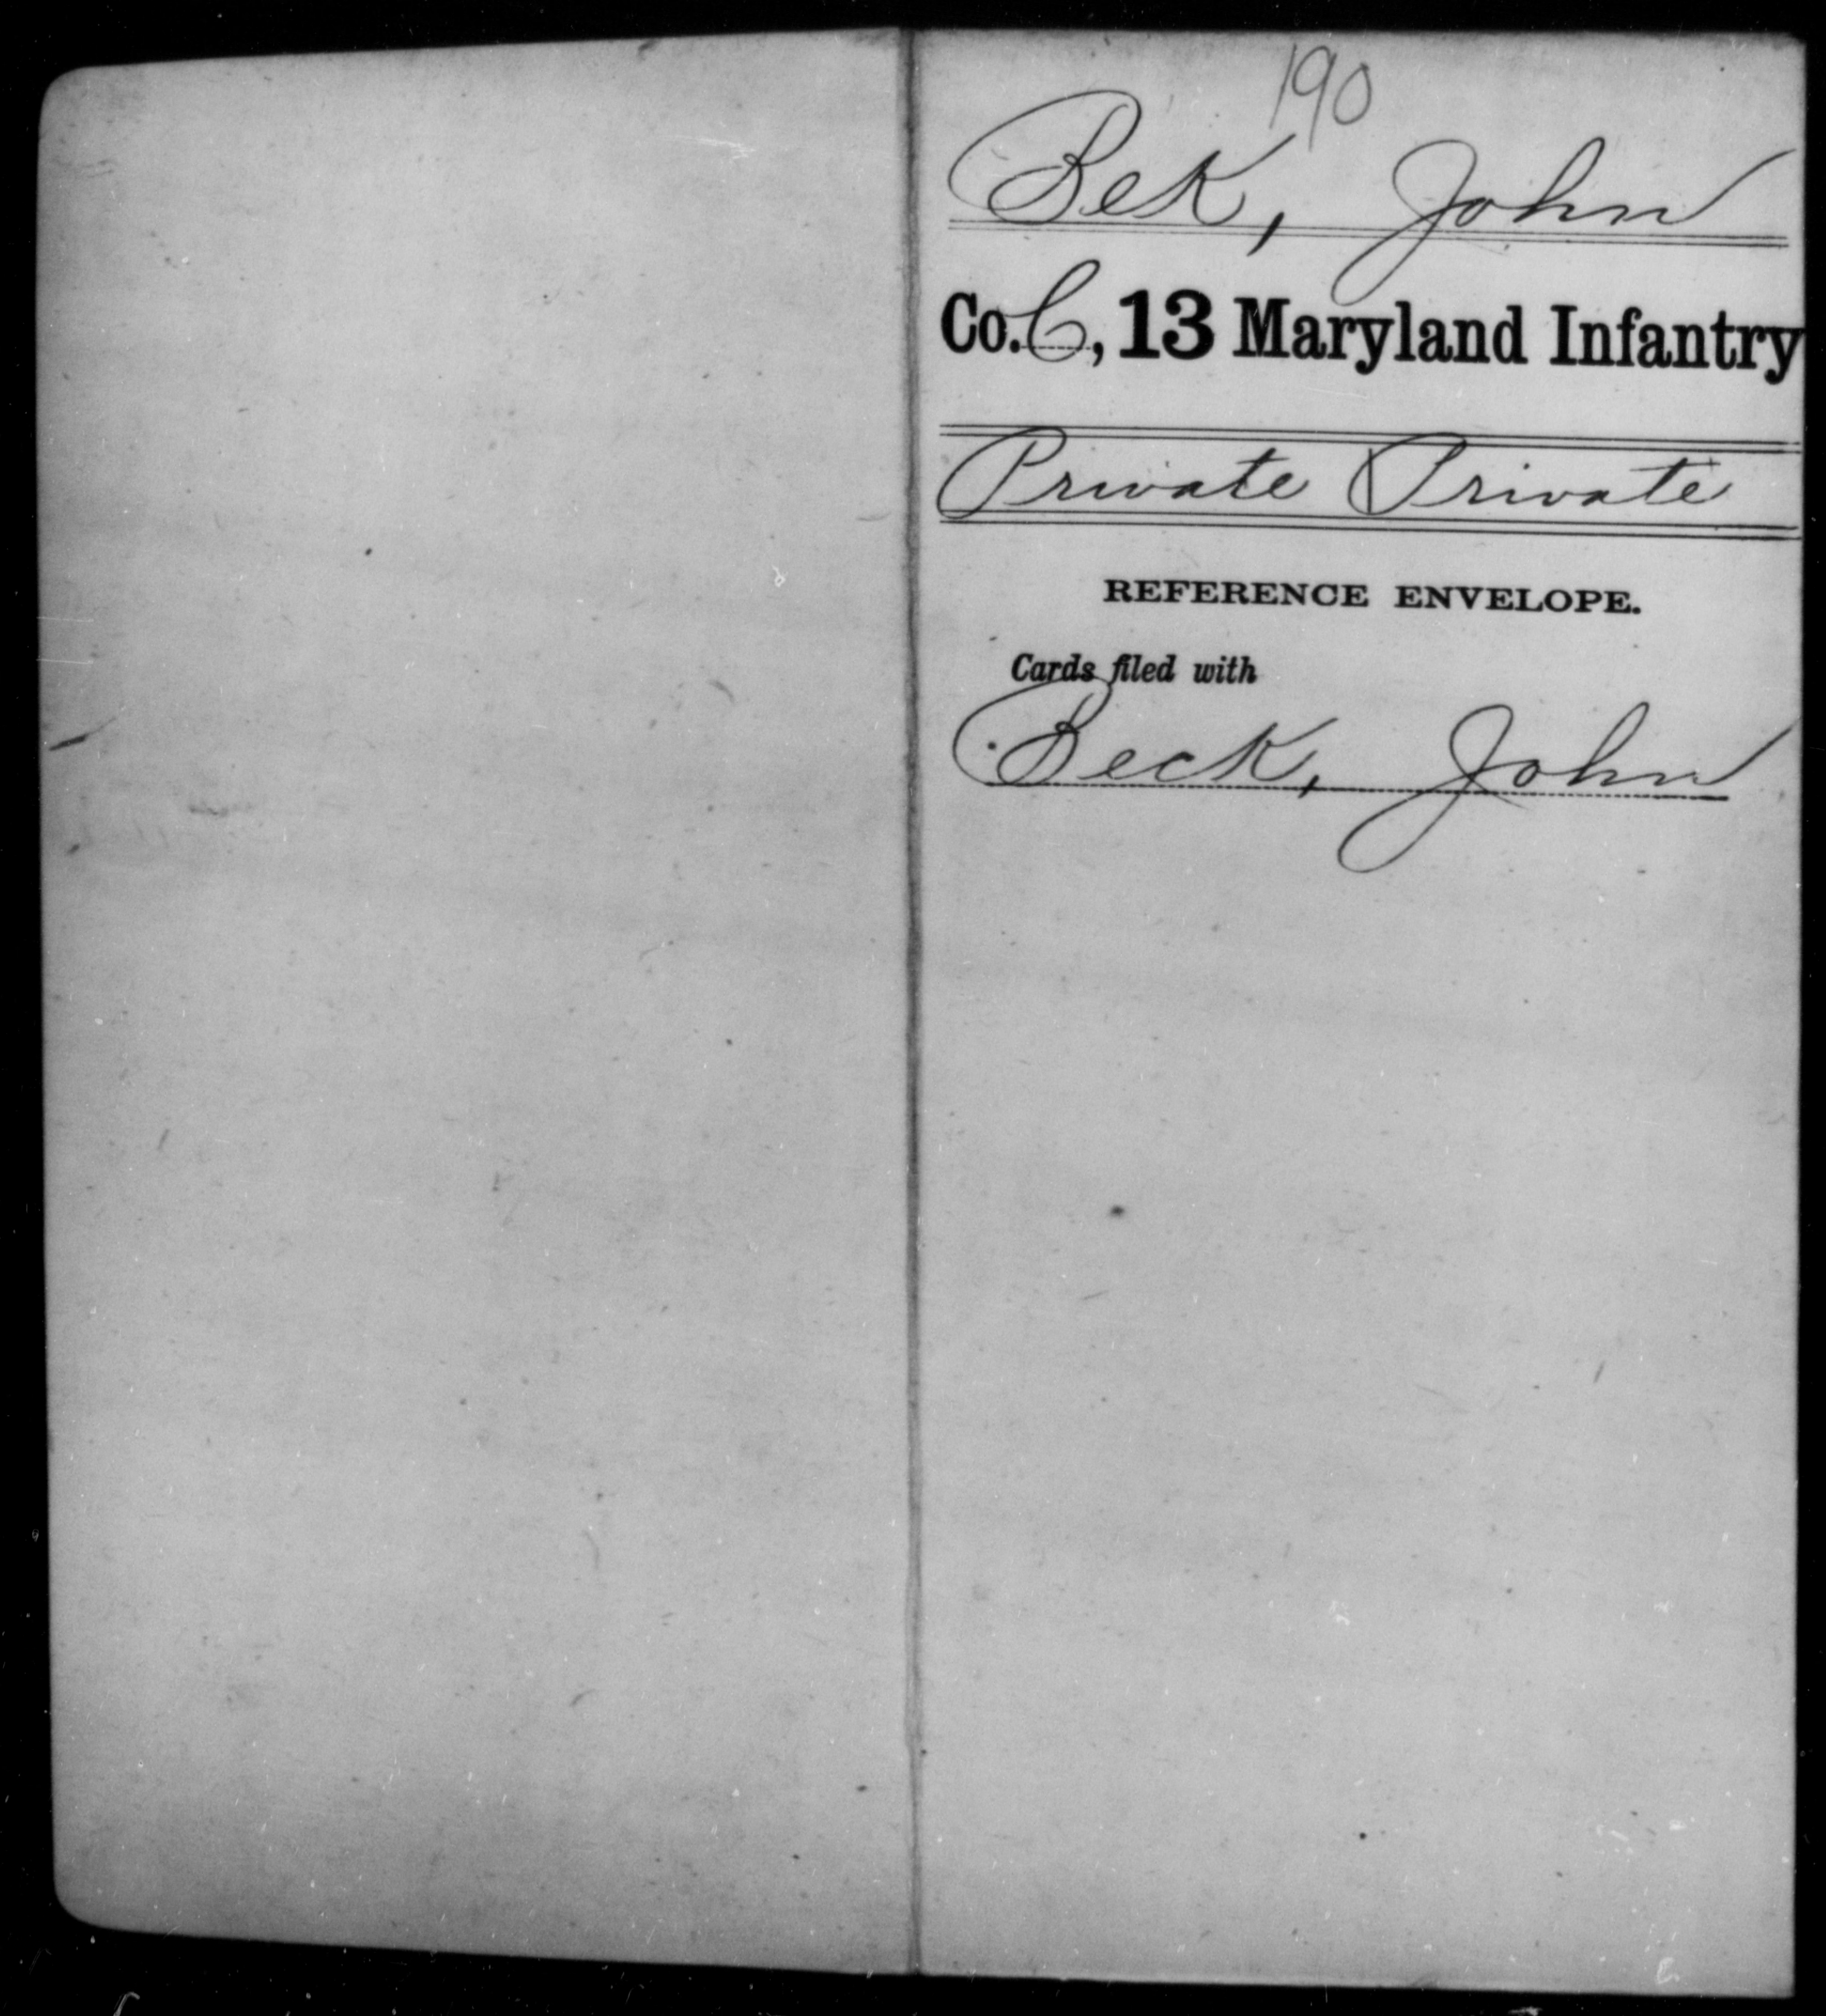 [Maryland] Bek, John - Age [Blank], Year: [BLANK] - Twelfth Infantry (100 days, 1864), Ti-Z AND Thirteenth Infantry, A-Bel